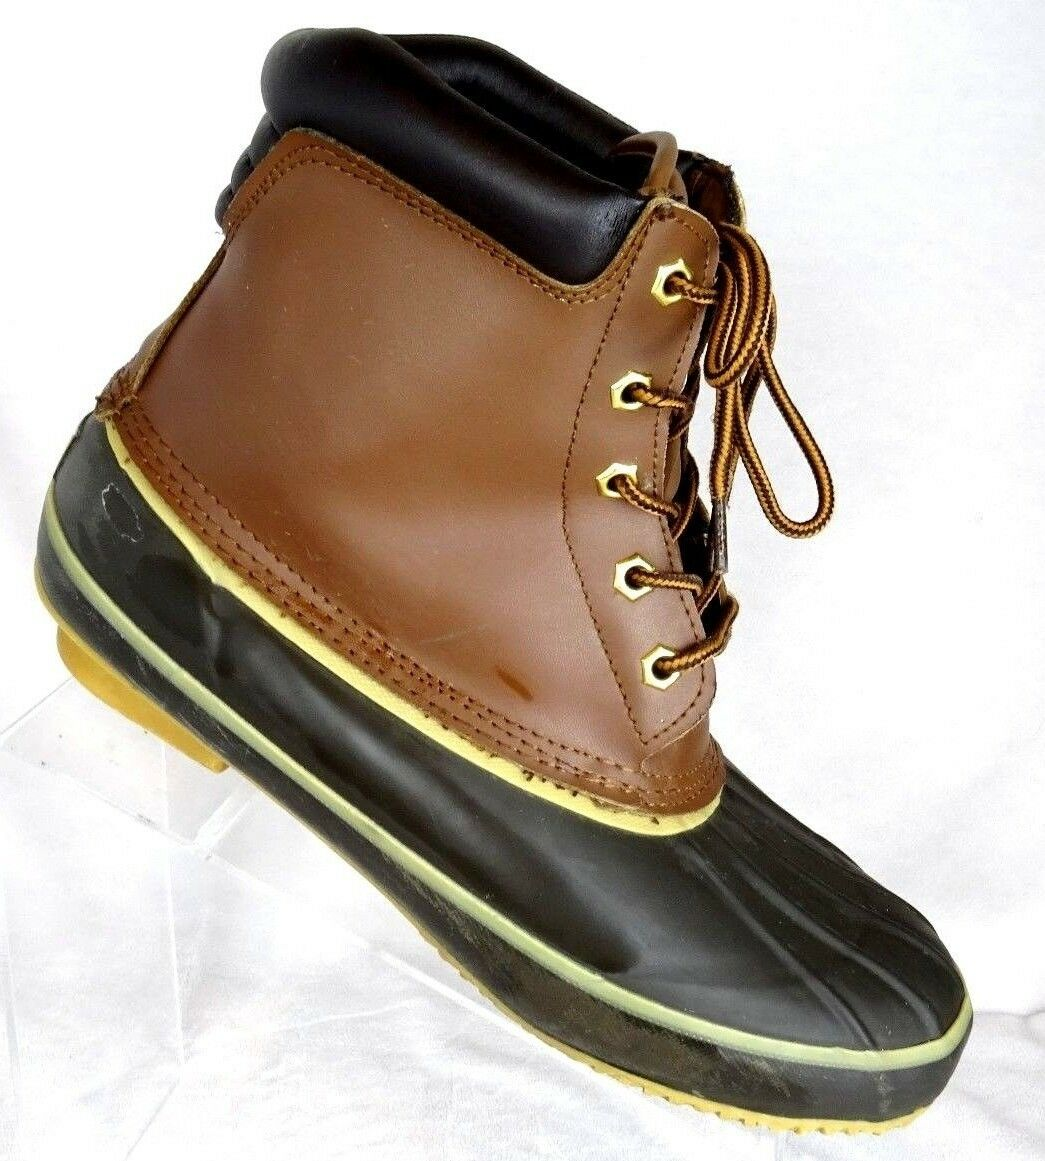 Tamarack Duck Boot for Men Size 13M JPJL-111505-M Brown Steel Shank shoes